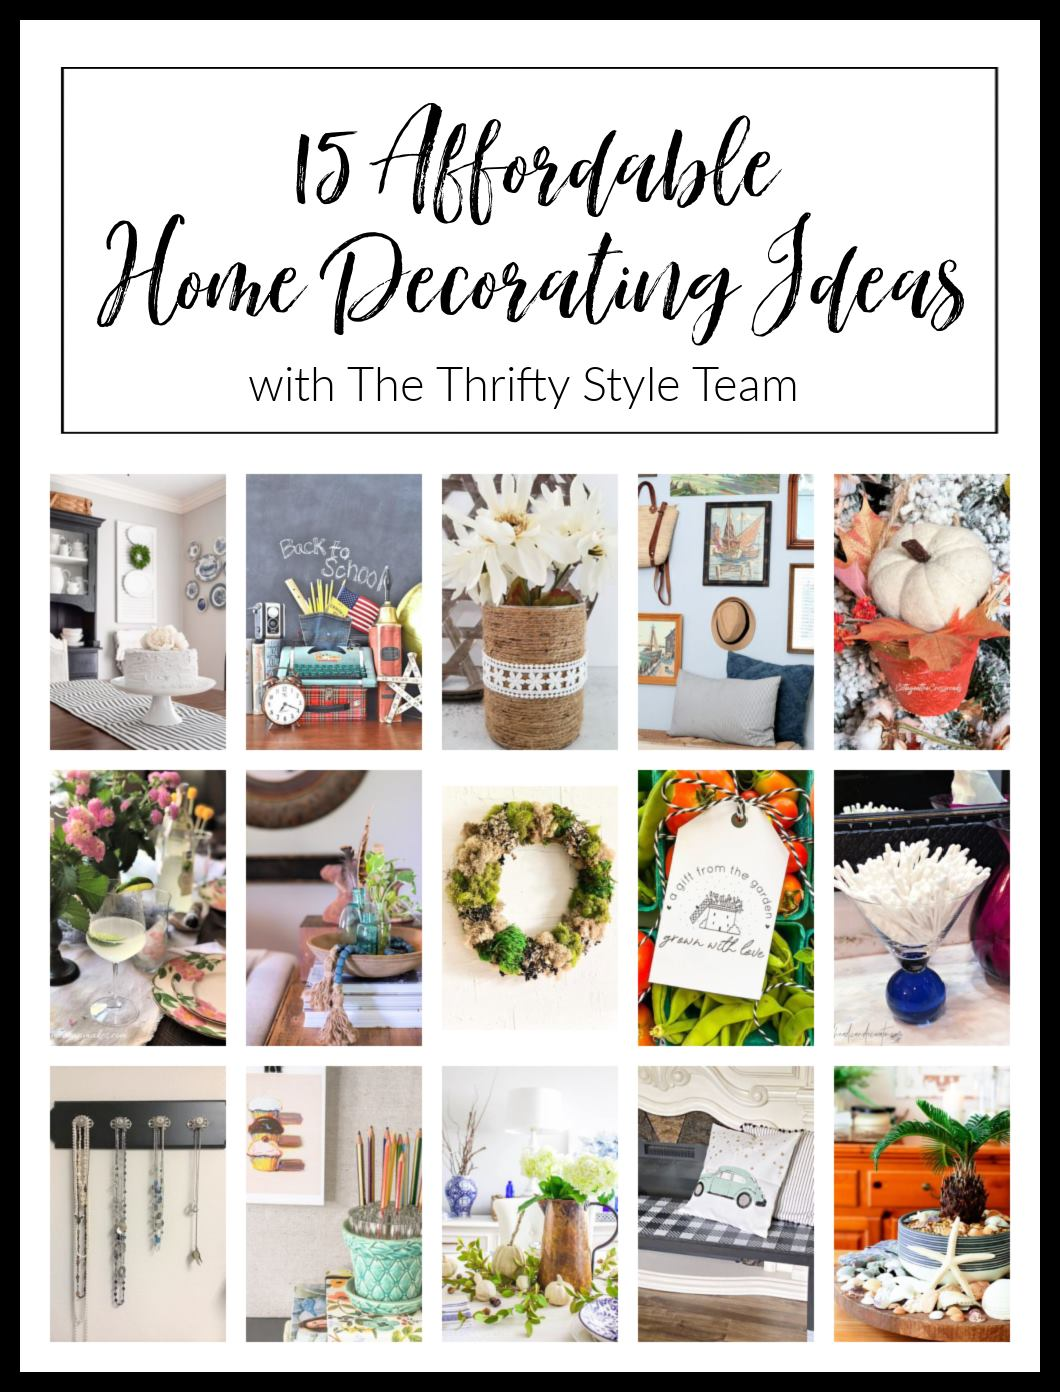 15 Affordable Home Decorating Ideas